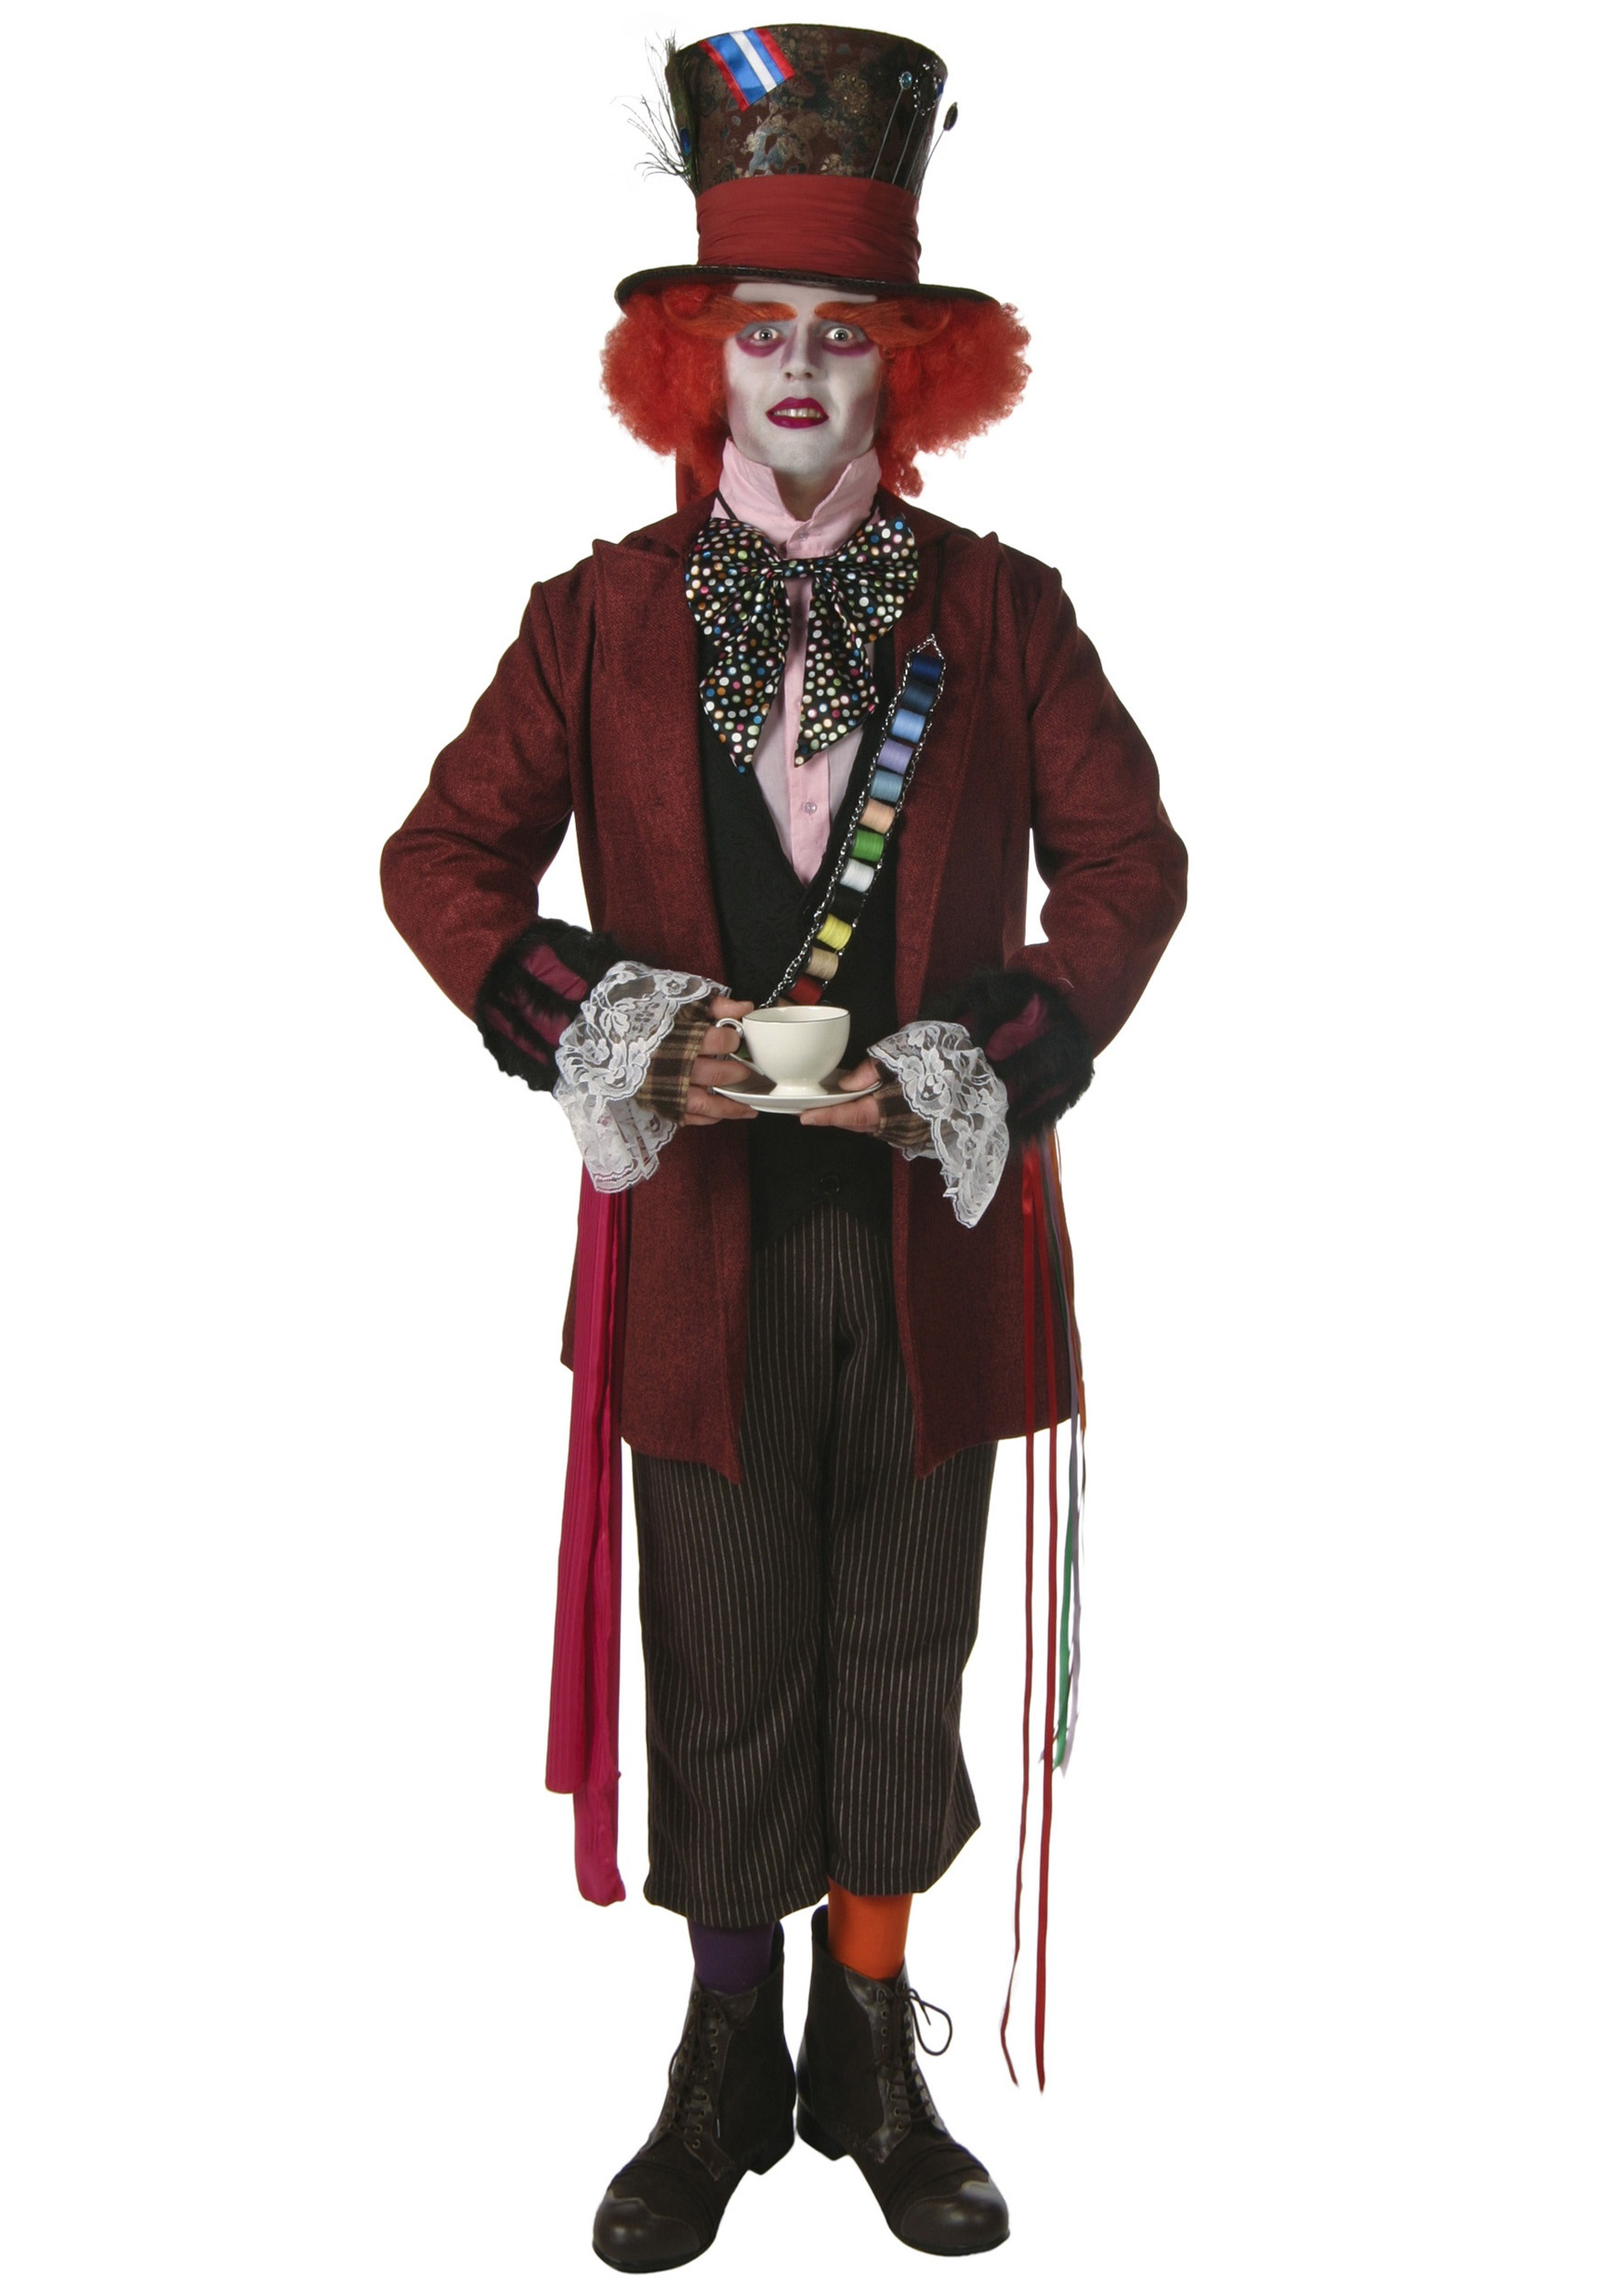 plus size authentic mad hatter costume - halloween costume ideas 2018